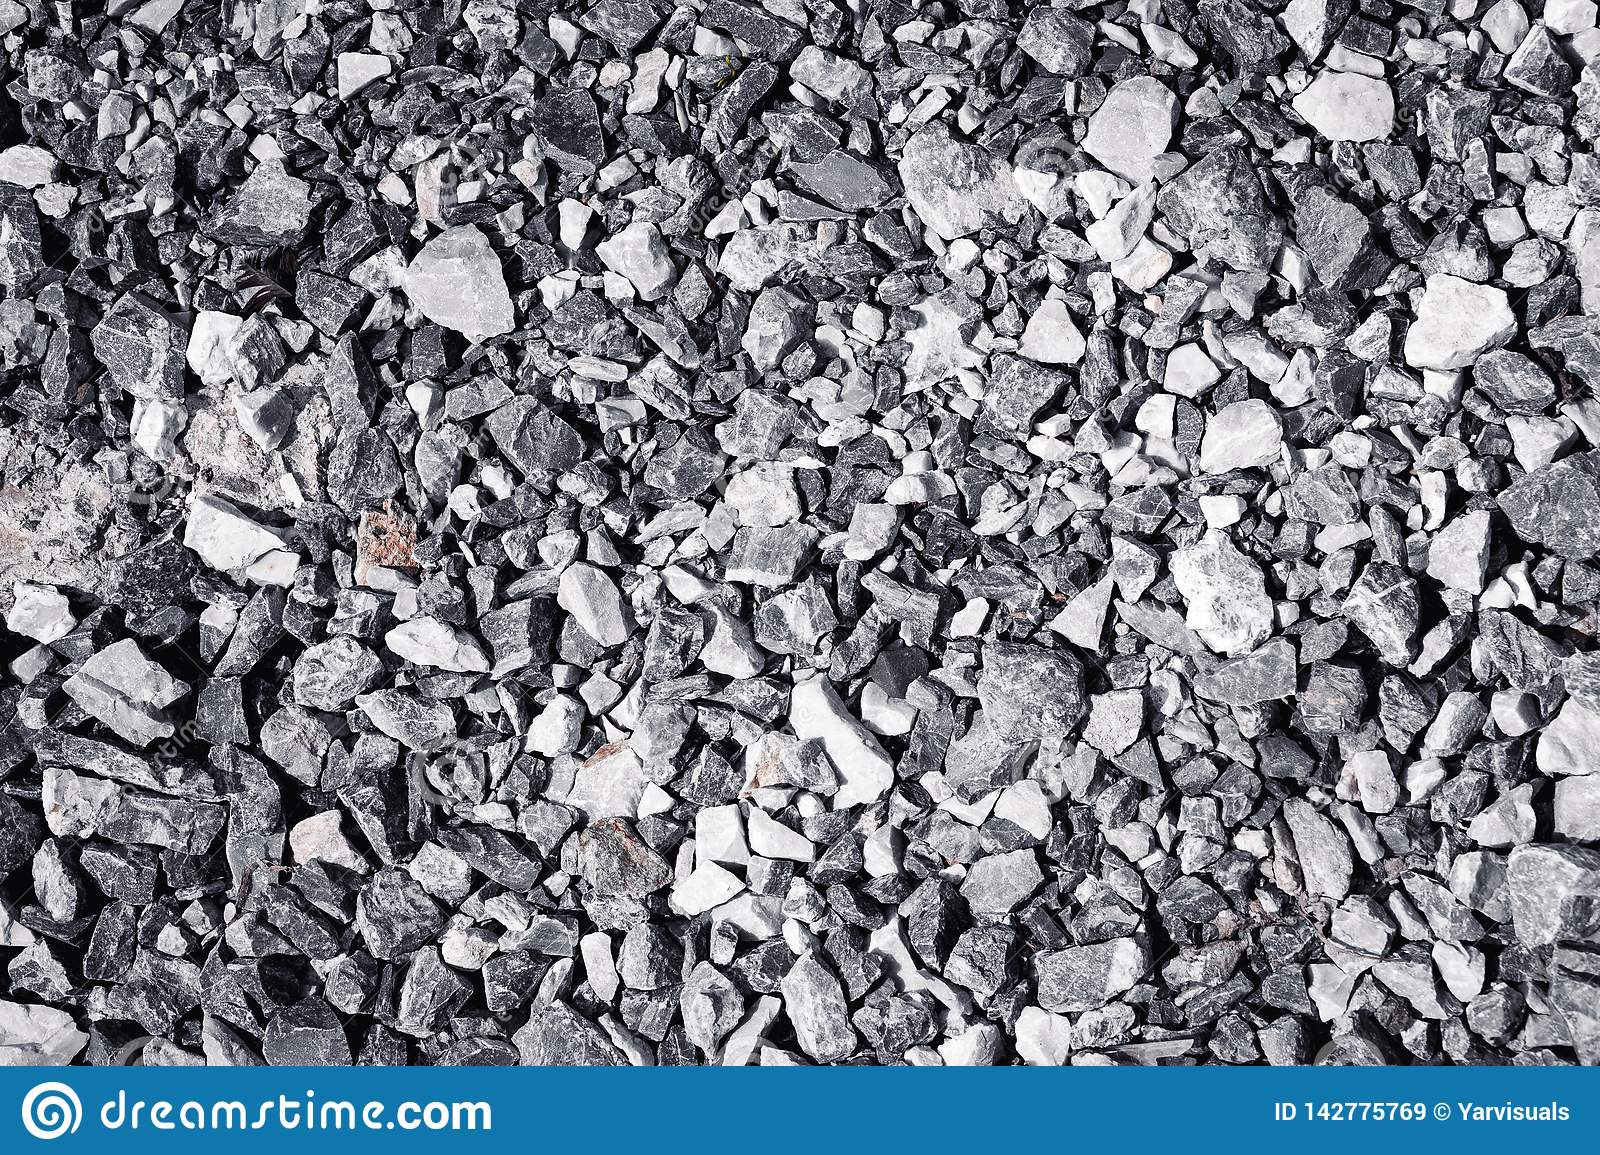 The Continuous Space Filled With Granite Gravel Texture White Pebbles Stone Background Gravel Stone Wallpaper Landscape Concep Stock Image Image Of Brown Detail 142775769